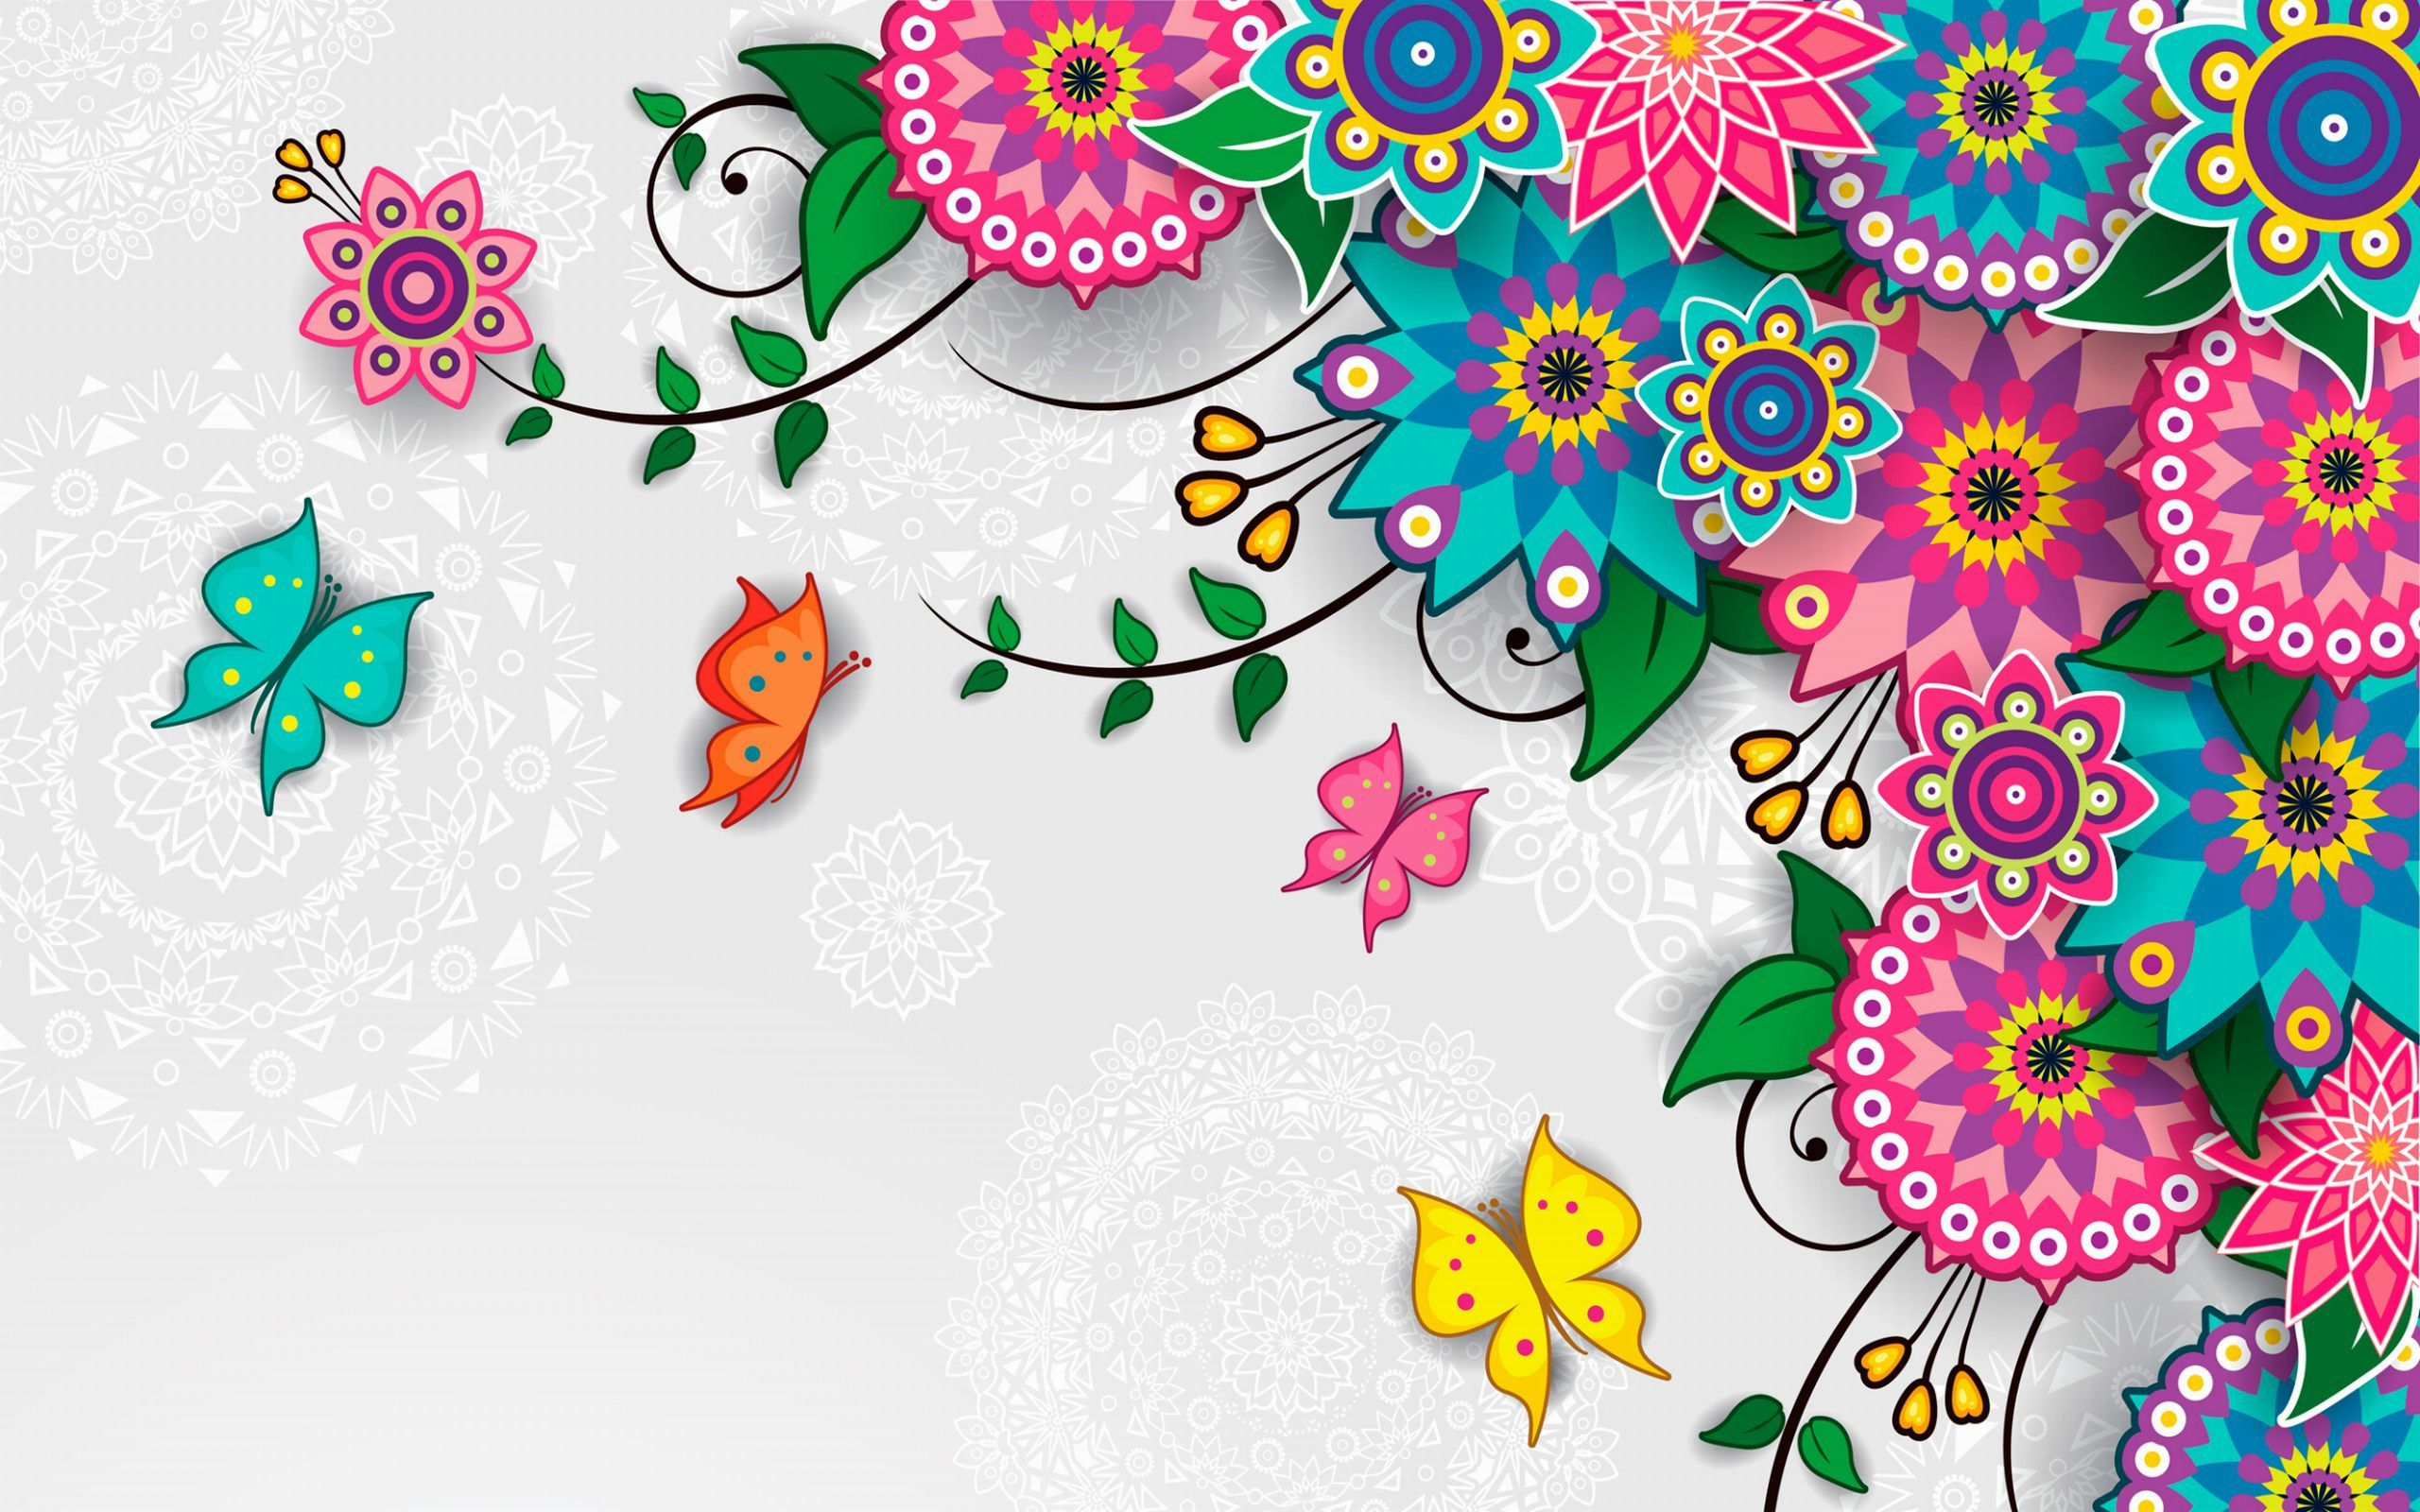 flowers pattern vector art background wallpaper Dekorasi